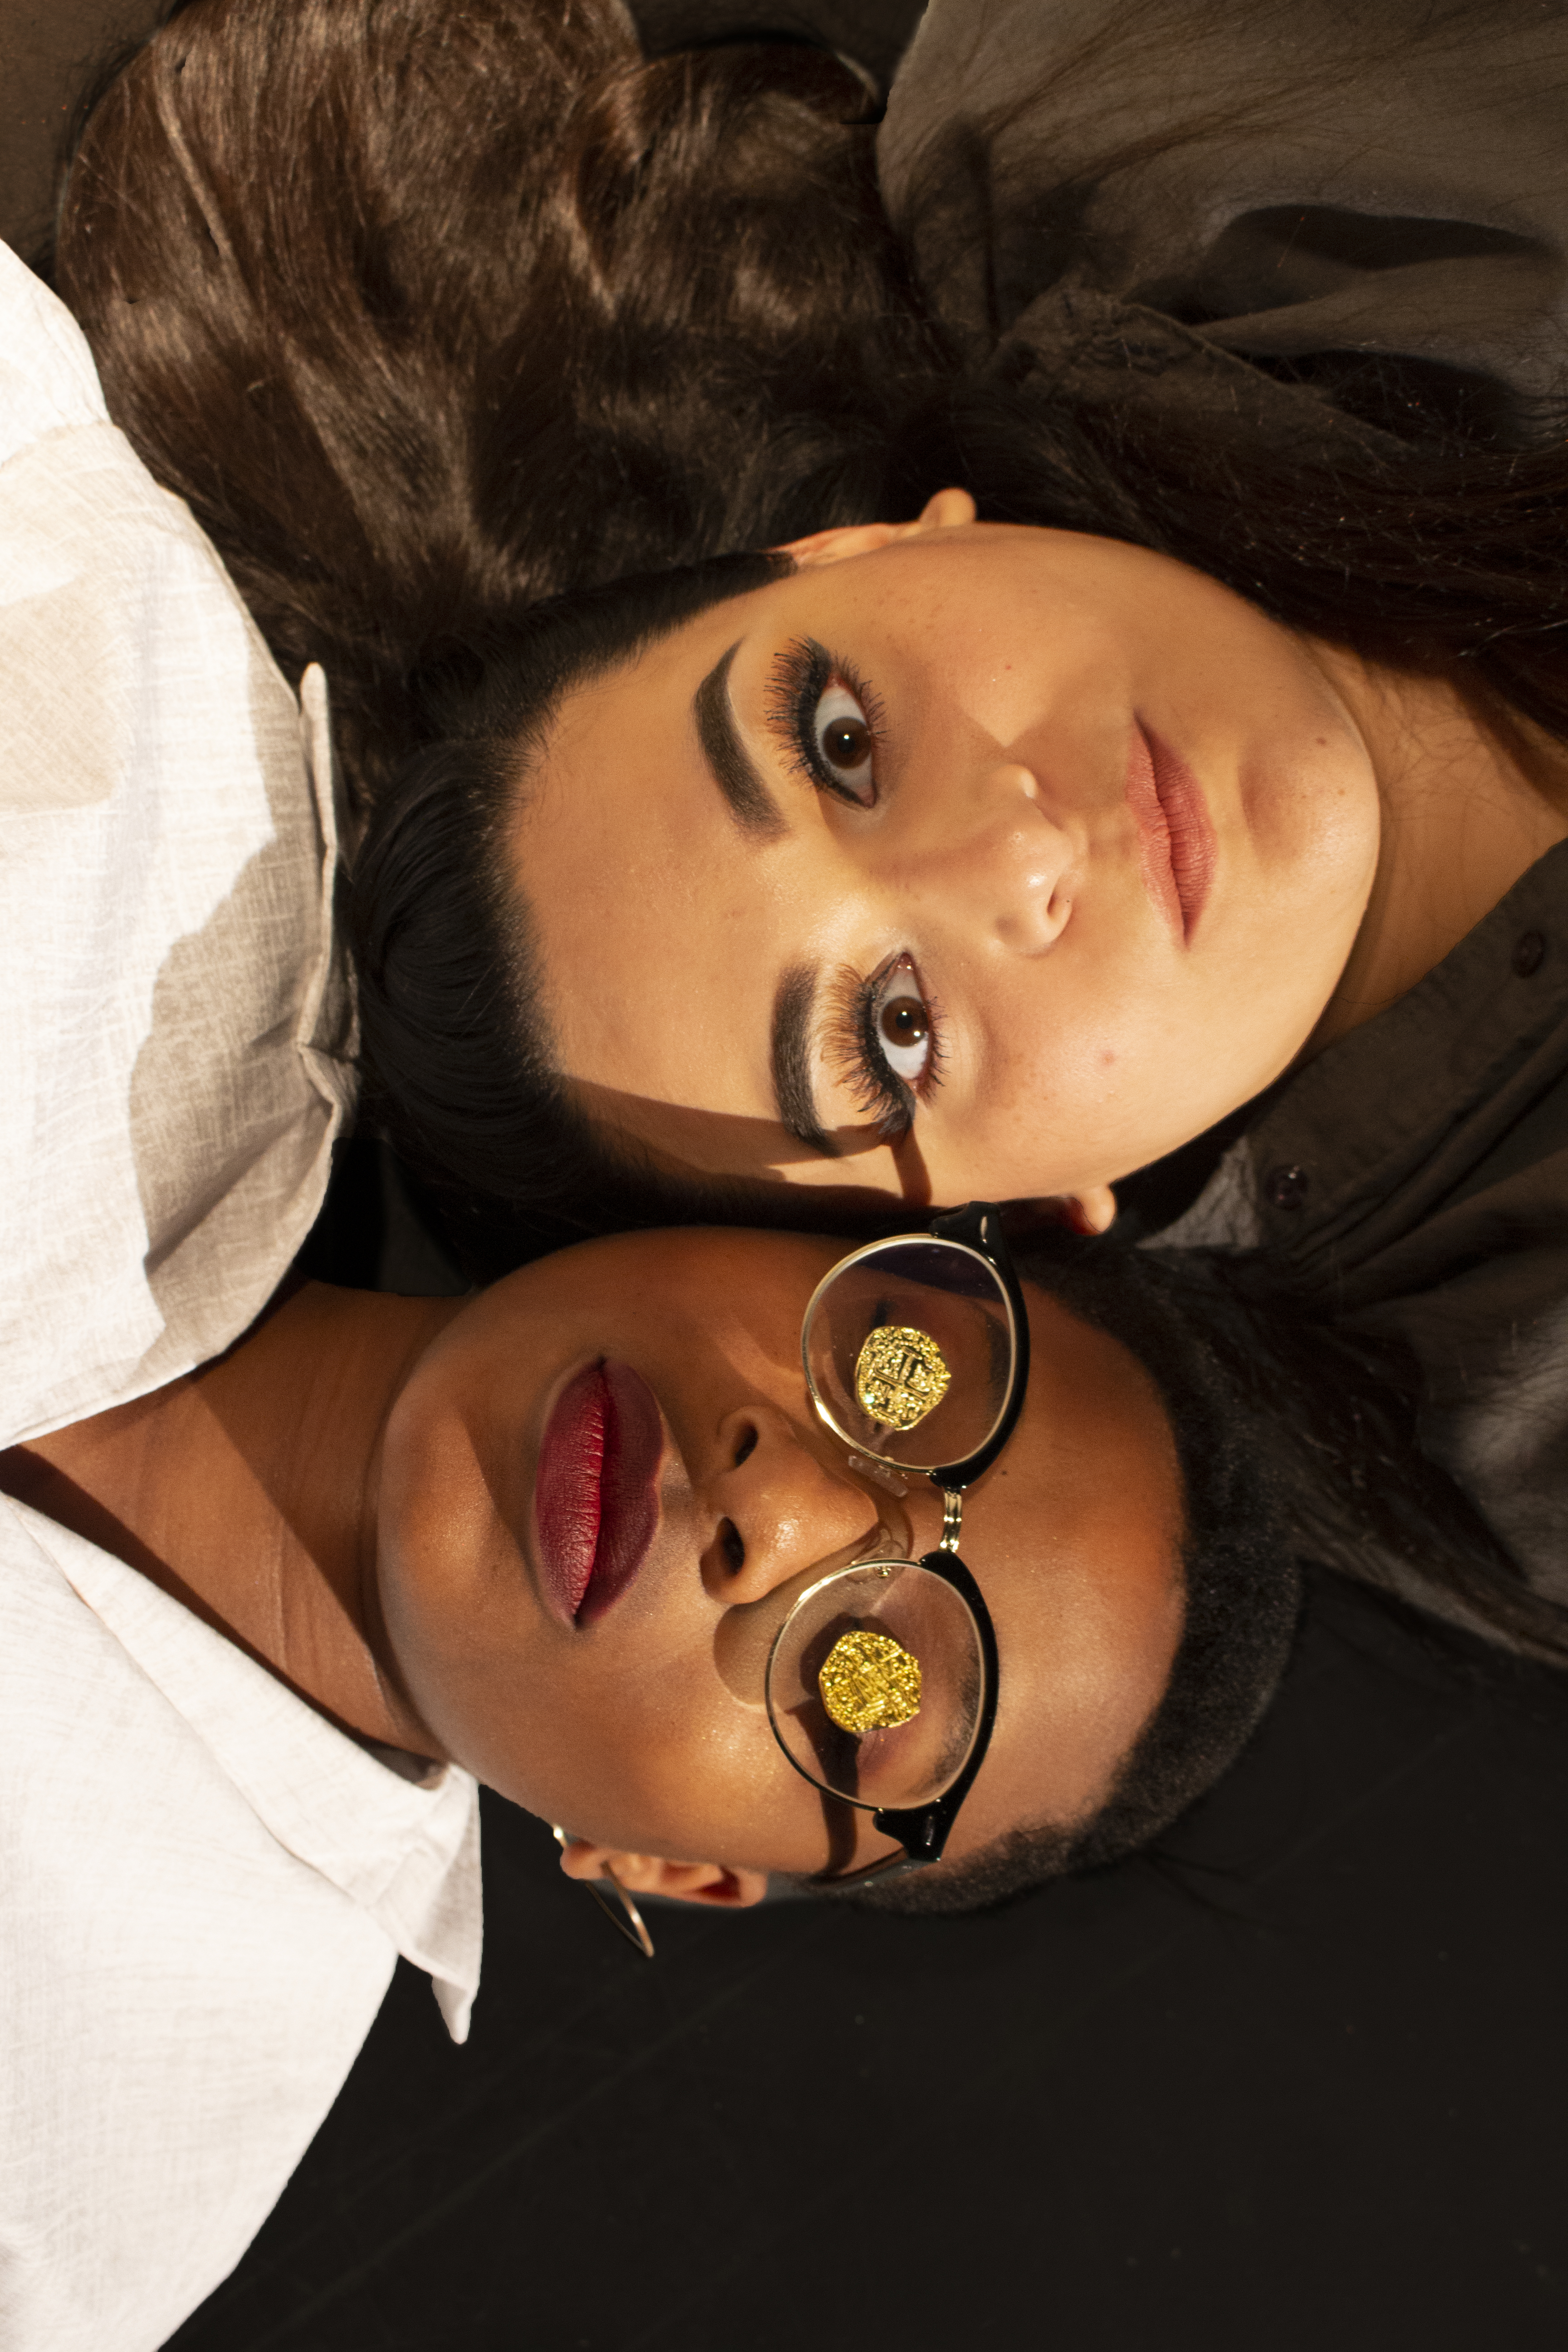 two girls laying side by side, one with coins over her glasses